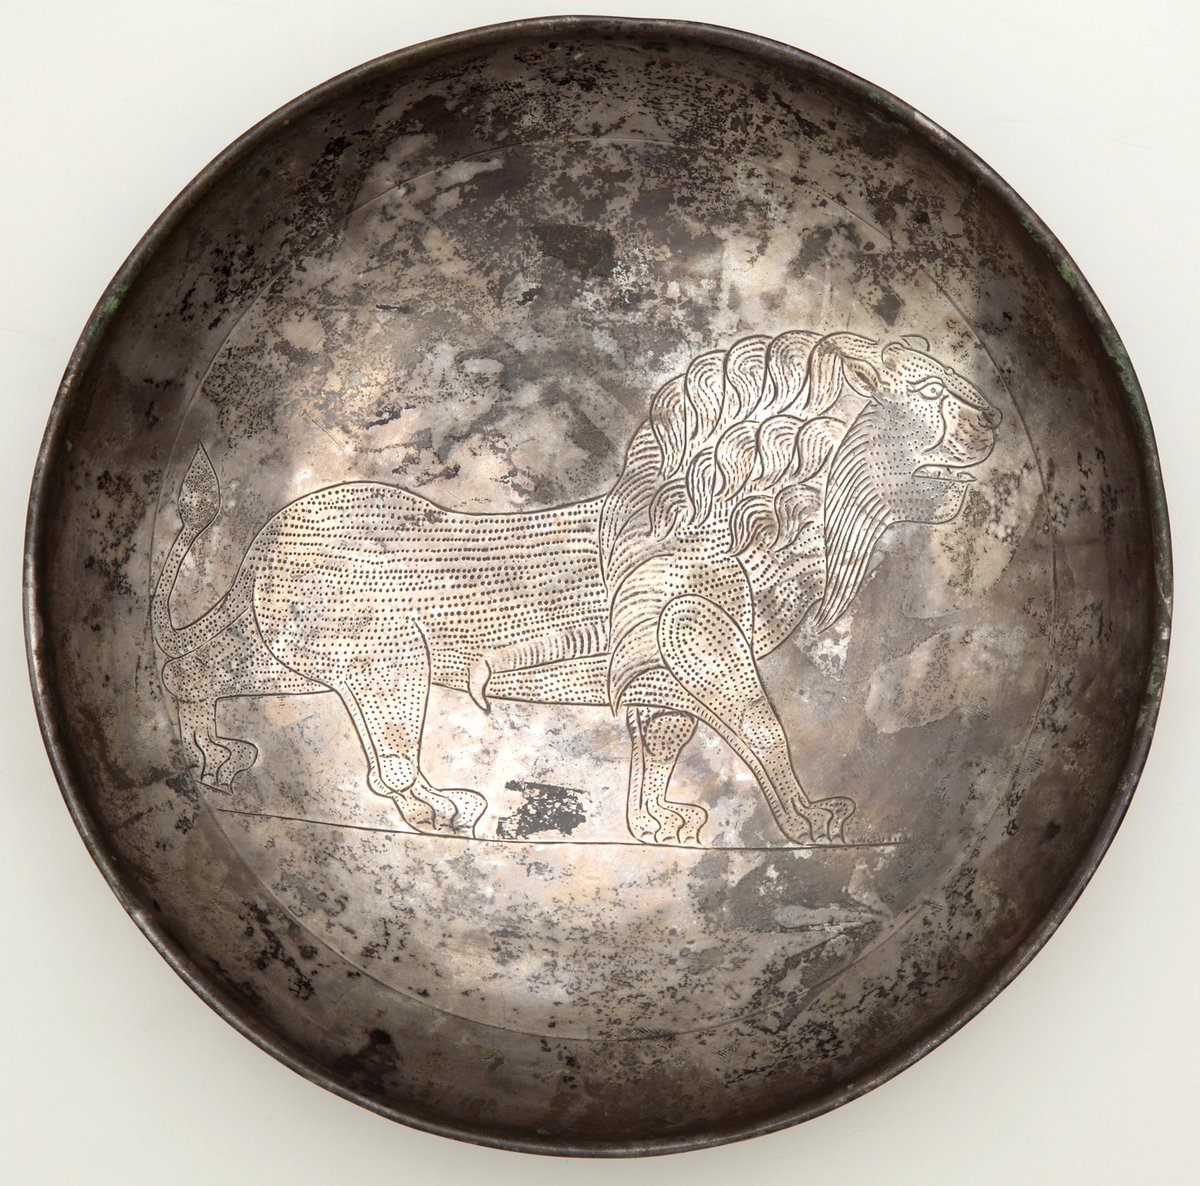 A #Sasanian silver footed dish in the Khalili collection patreon.com/eranudturan